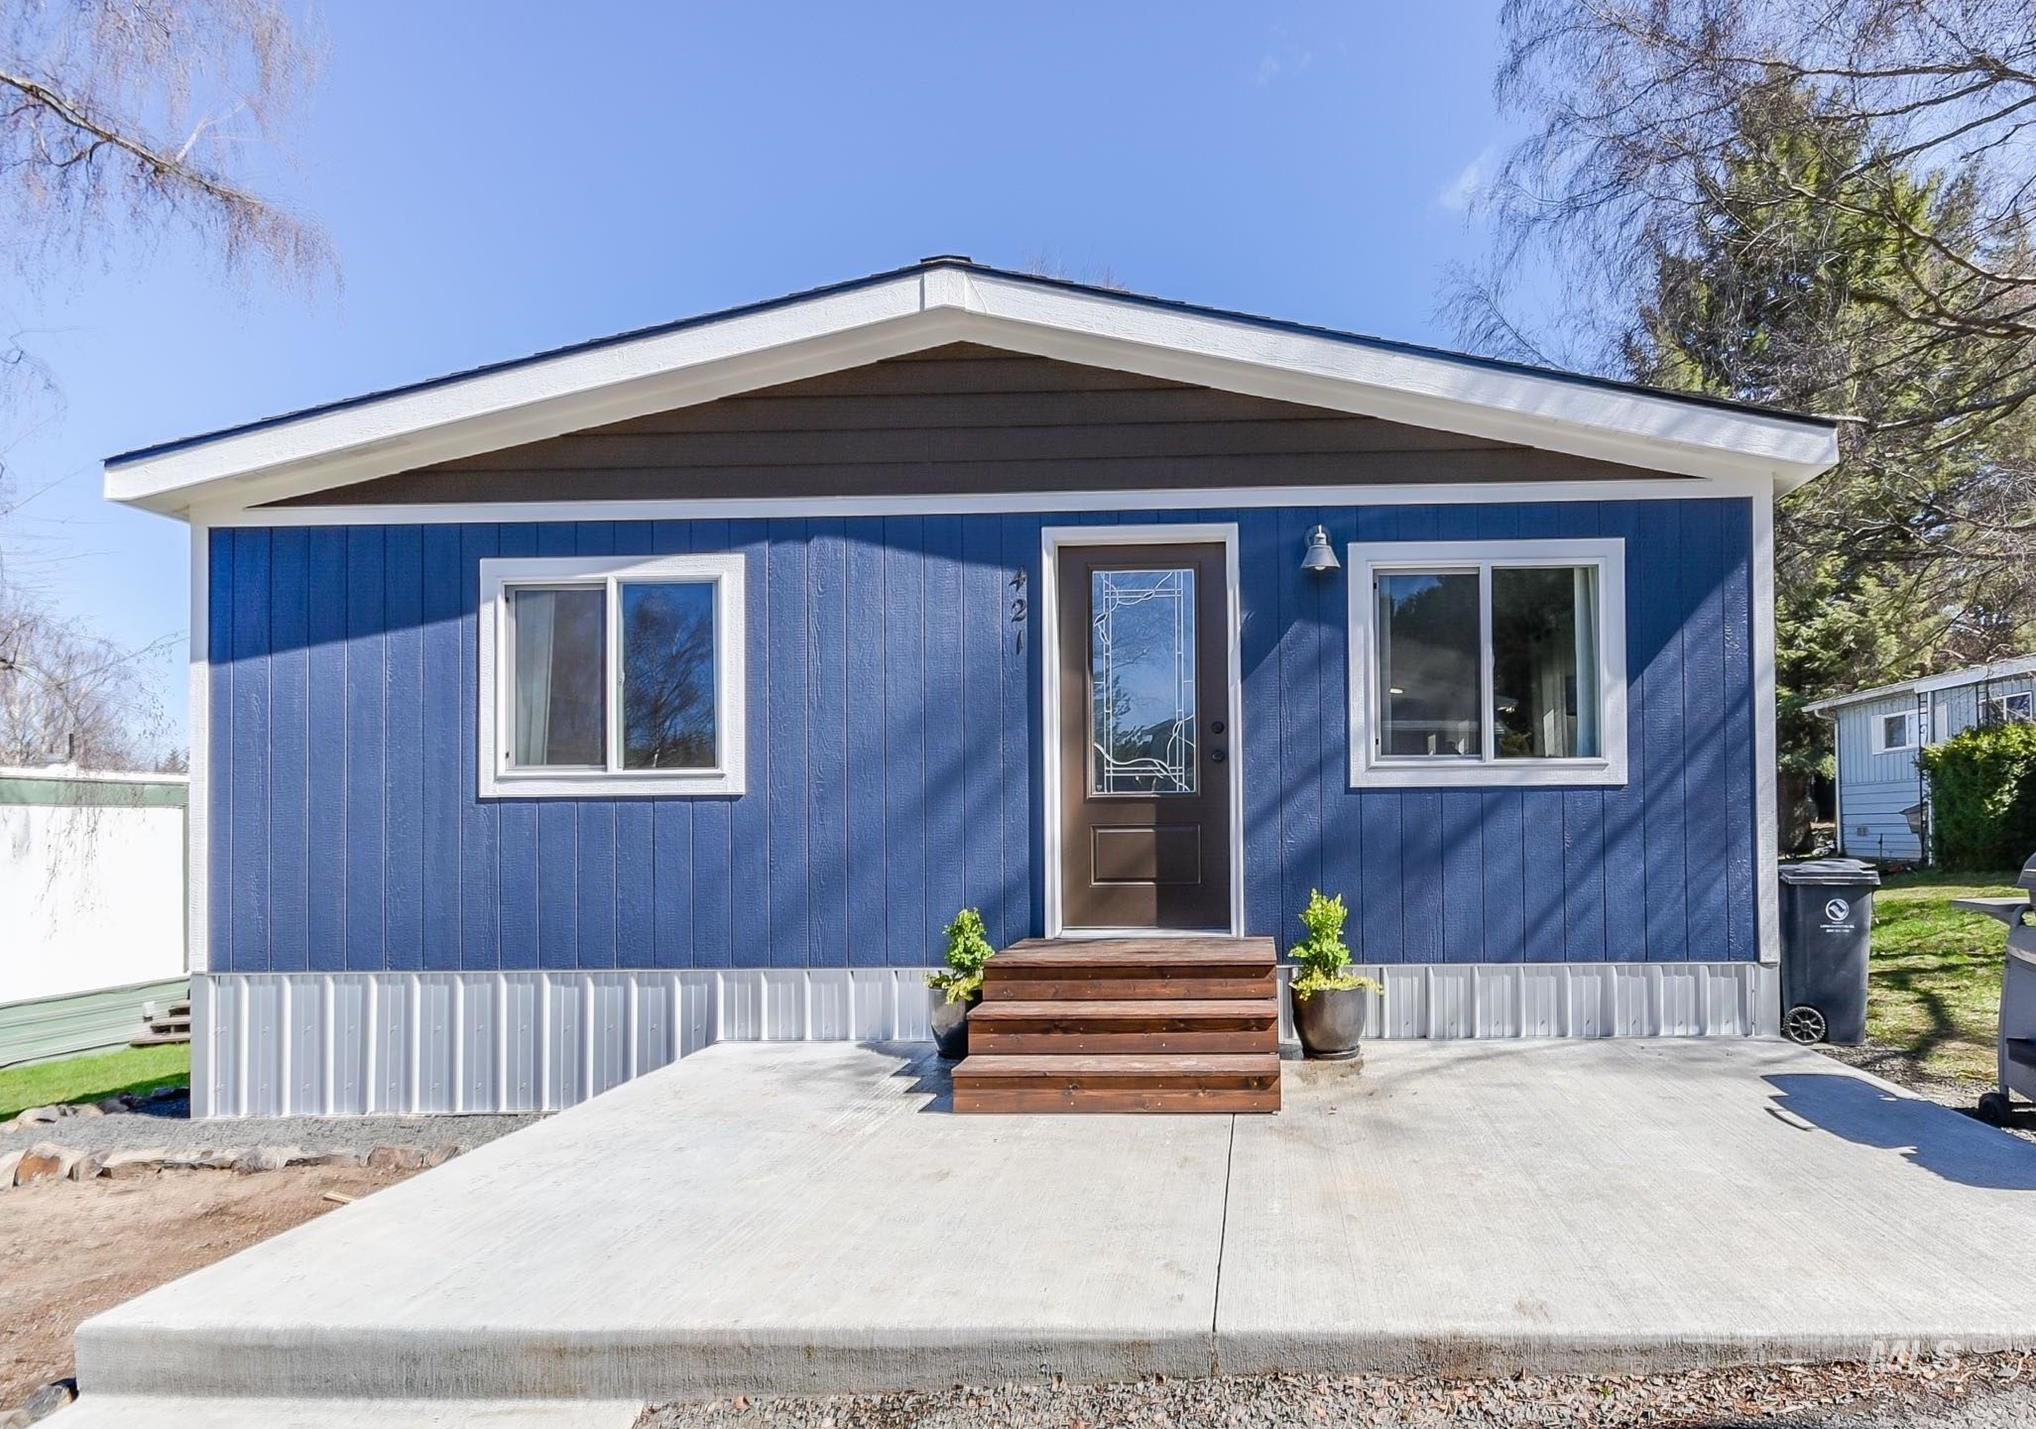 411 N Almon St # 421 Property Photo - Moscow, ID real estate listing